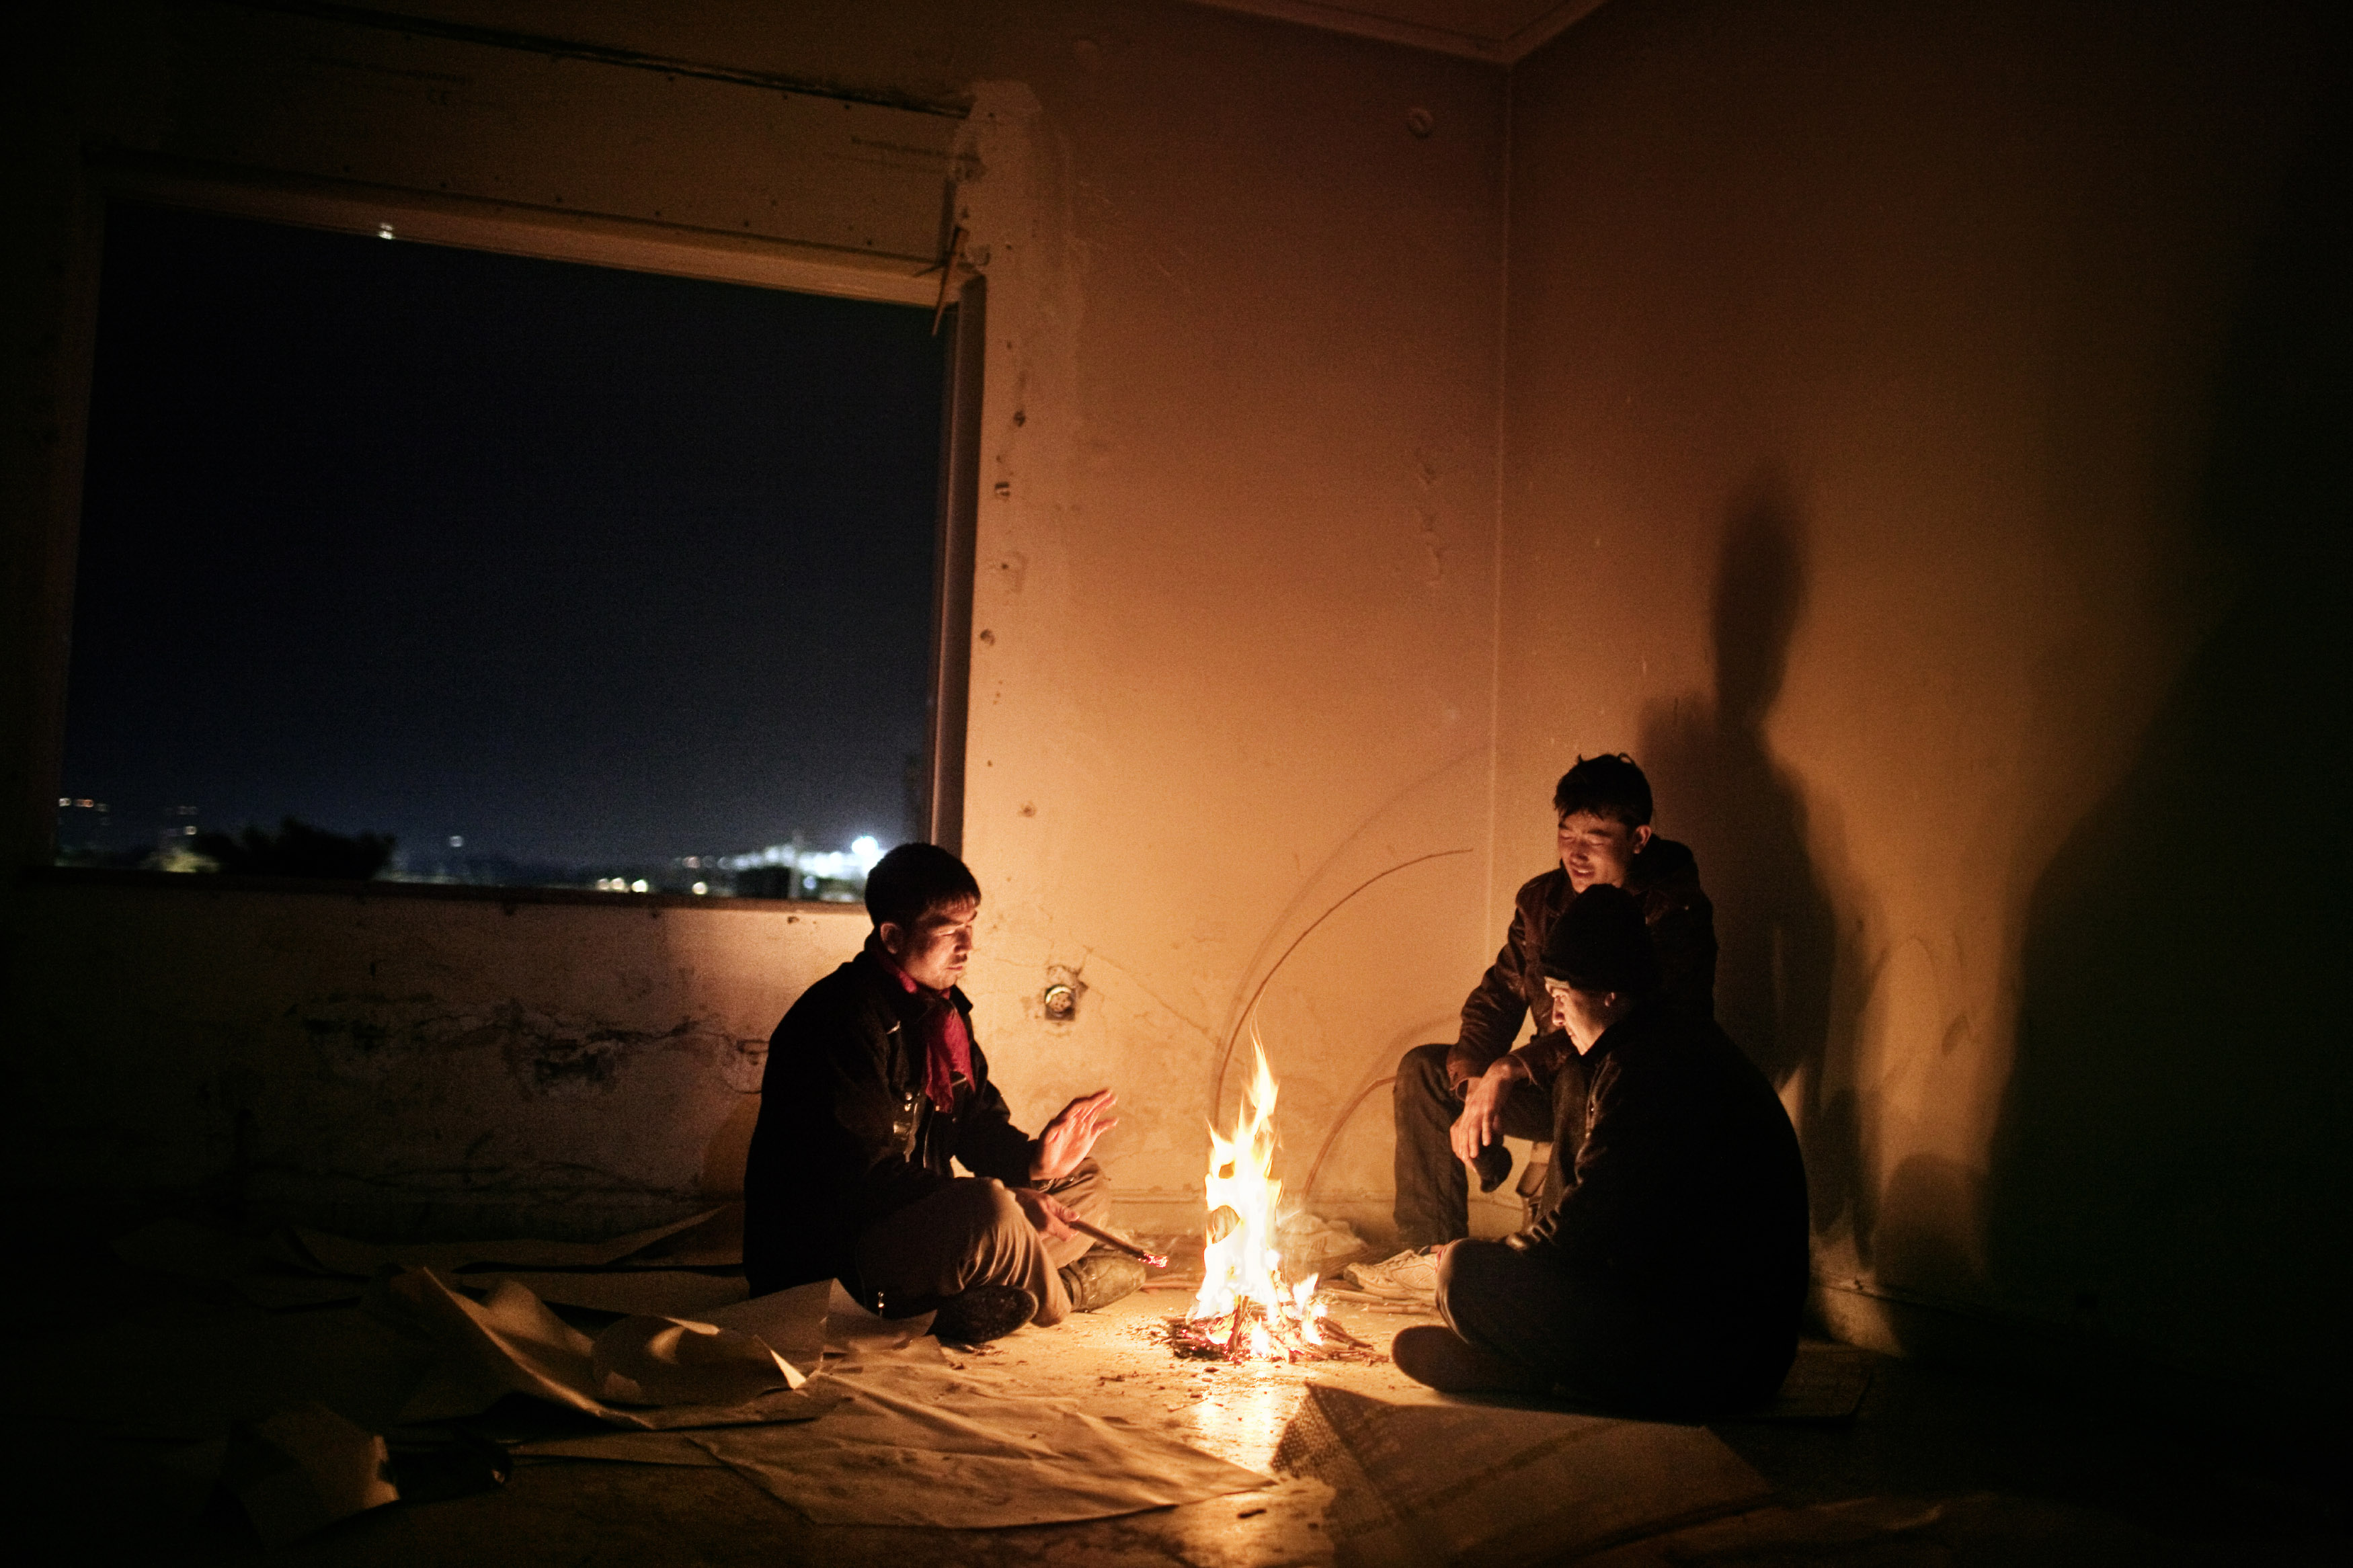 These three teenagers from Afghanistan lived in an abandoned factorynear the port of Patras. Patras Greece is one of the main escape points from Greece, due to the numerous cargo ships that dock in the port and are bound for Italy.